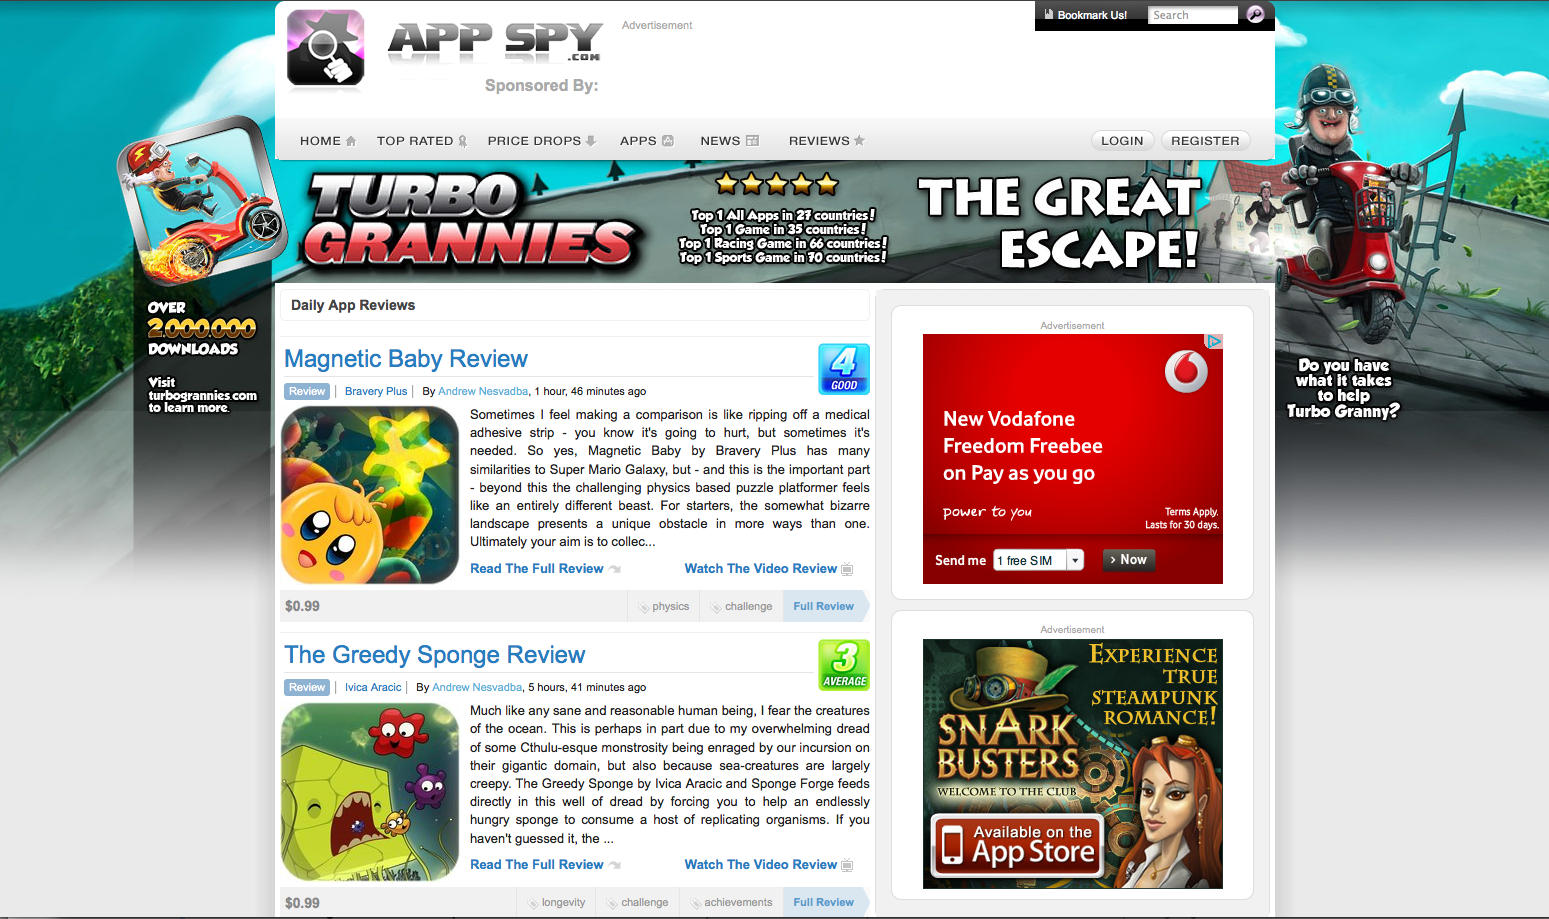 Pocket Gamer publisher Steel Media acquires AppSpy.com